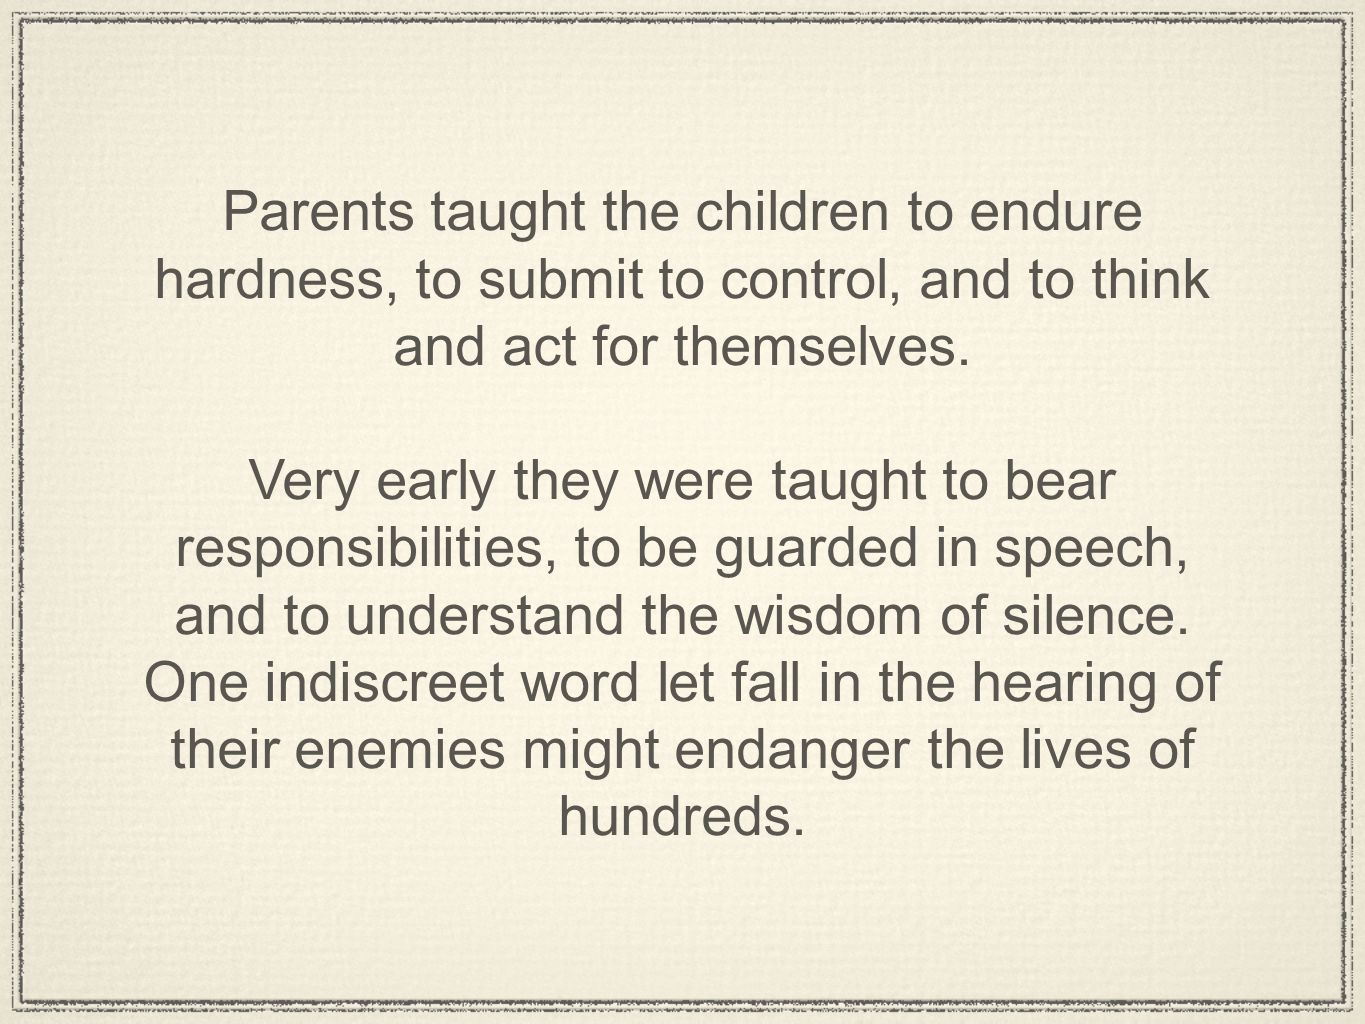 Parents taught the children to endure hardness, to submit to control, and to think and act for themselves.